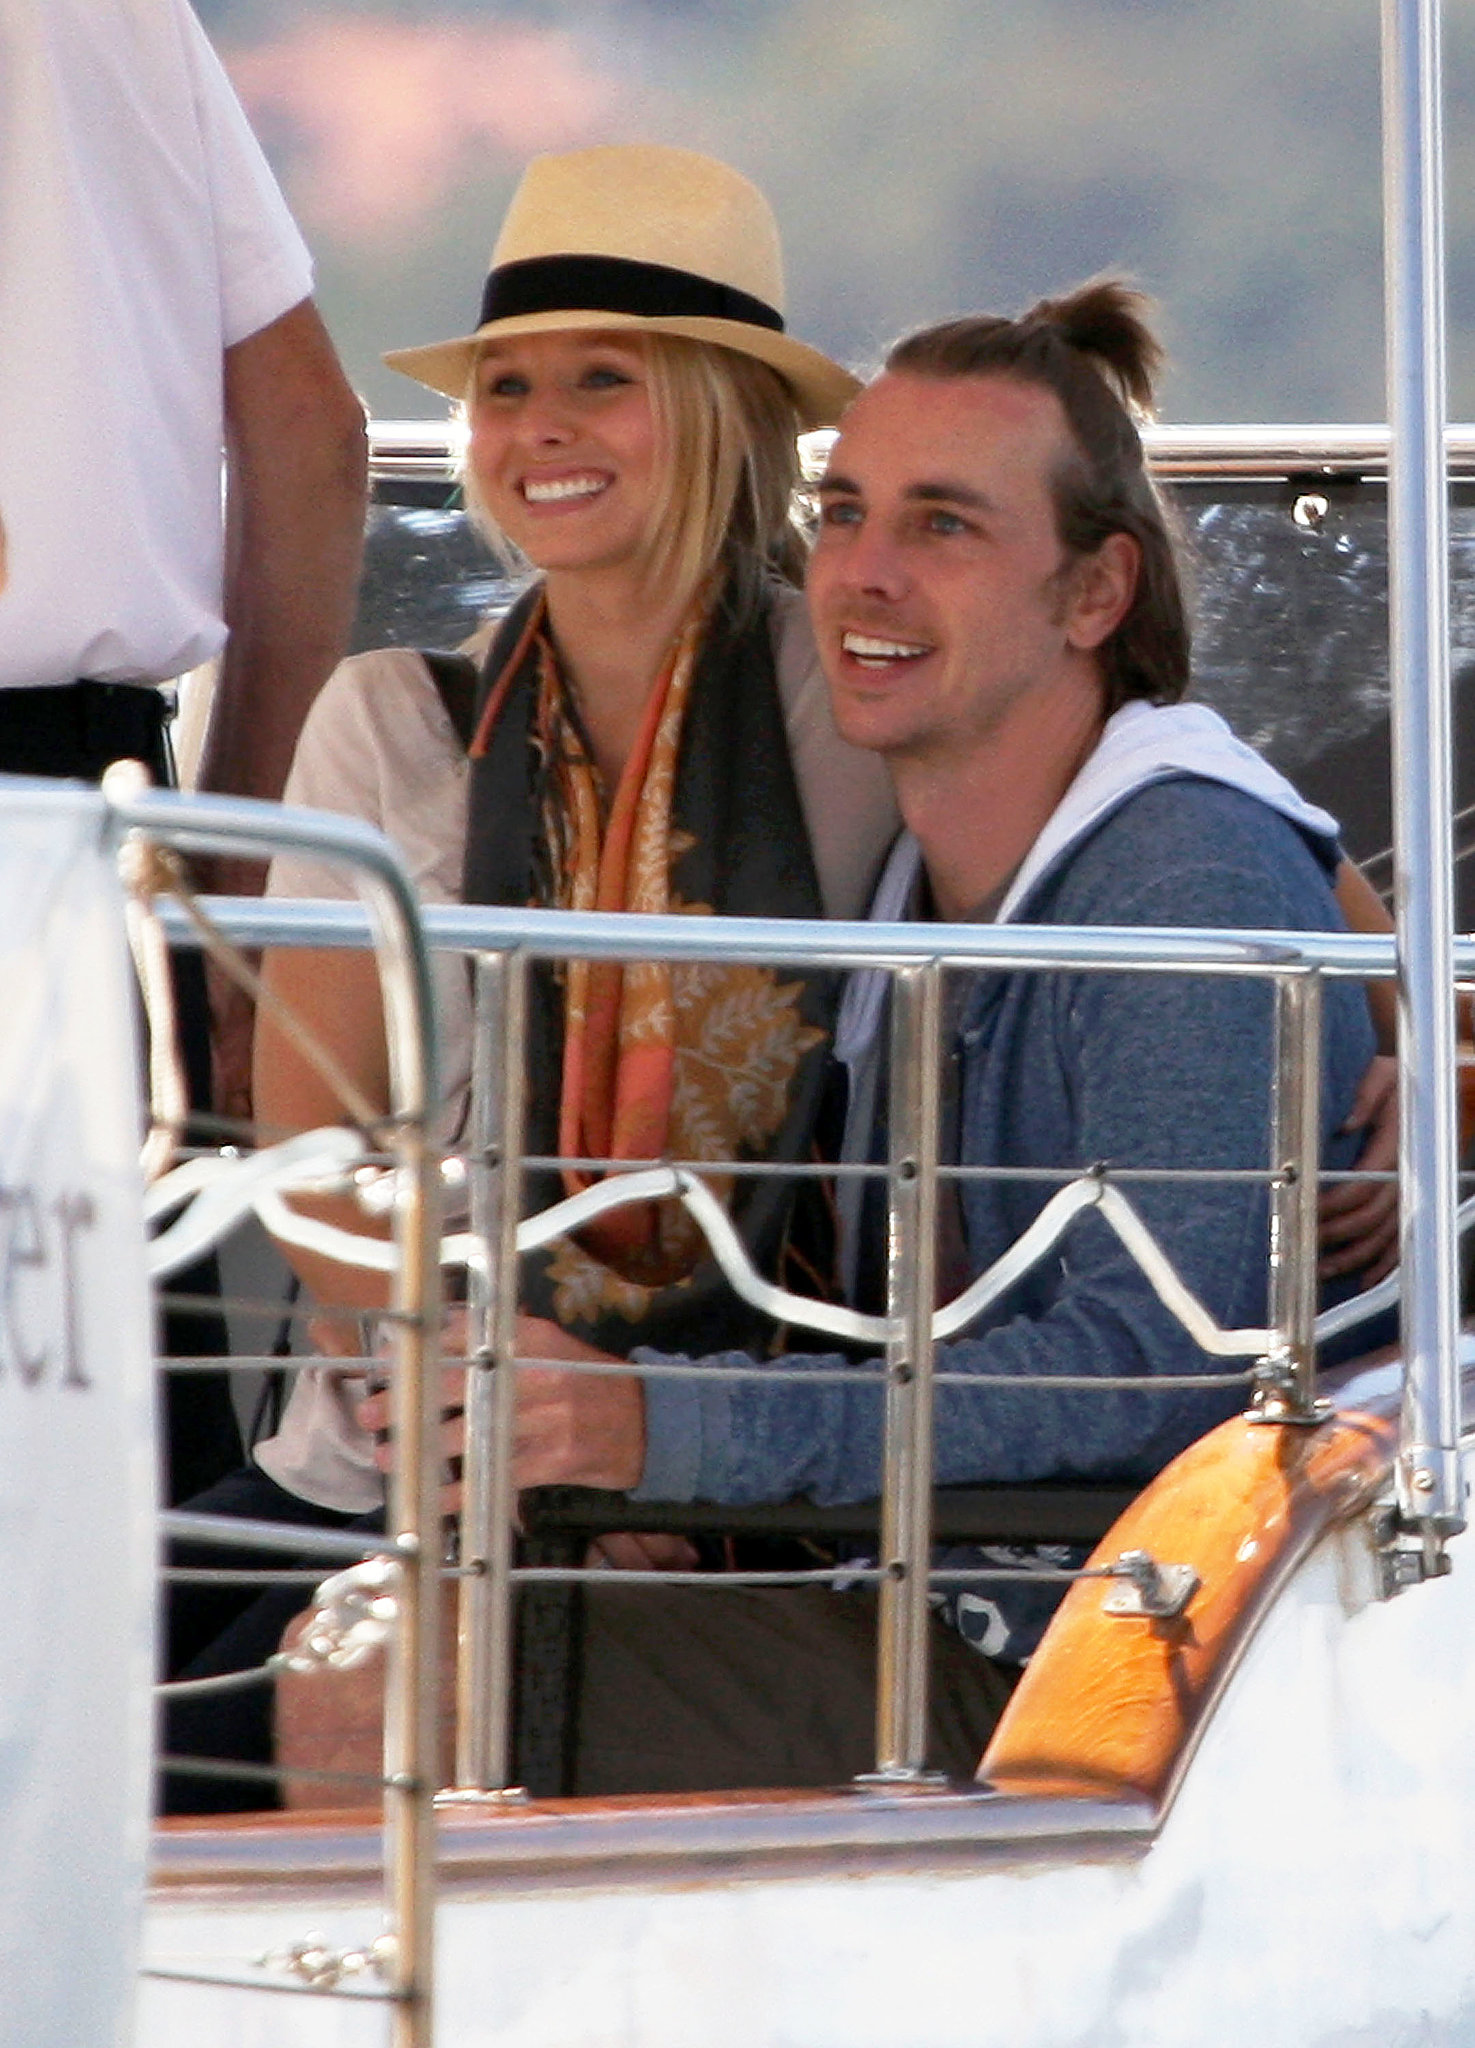 The pair went for a boat ride during a September 2009 trip to Sydney.